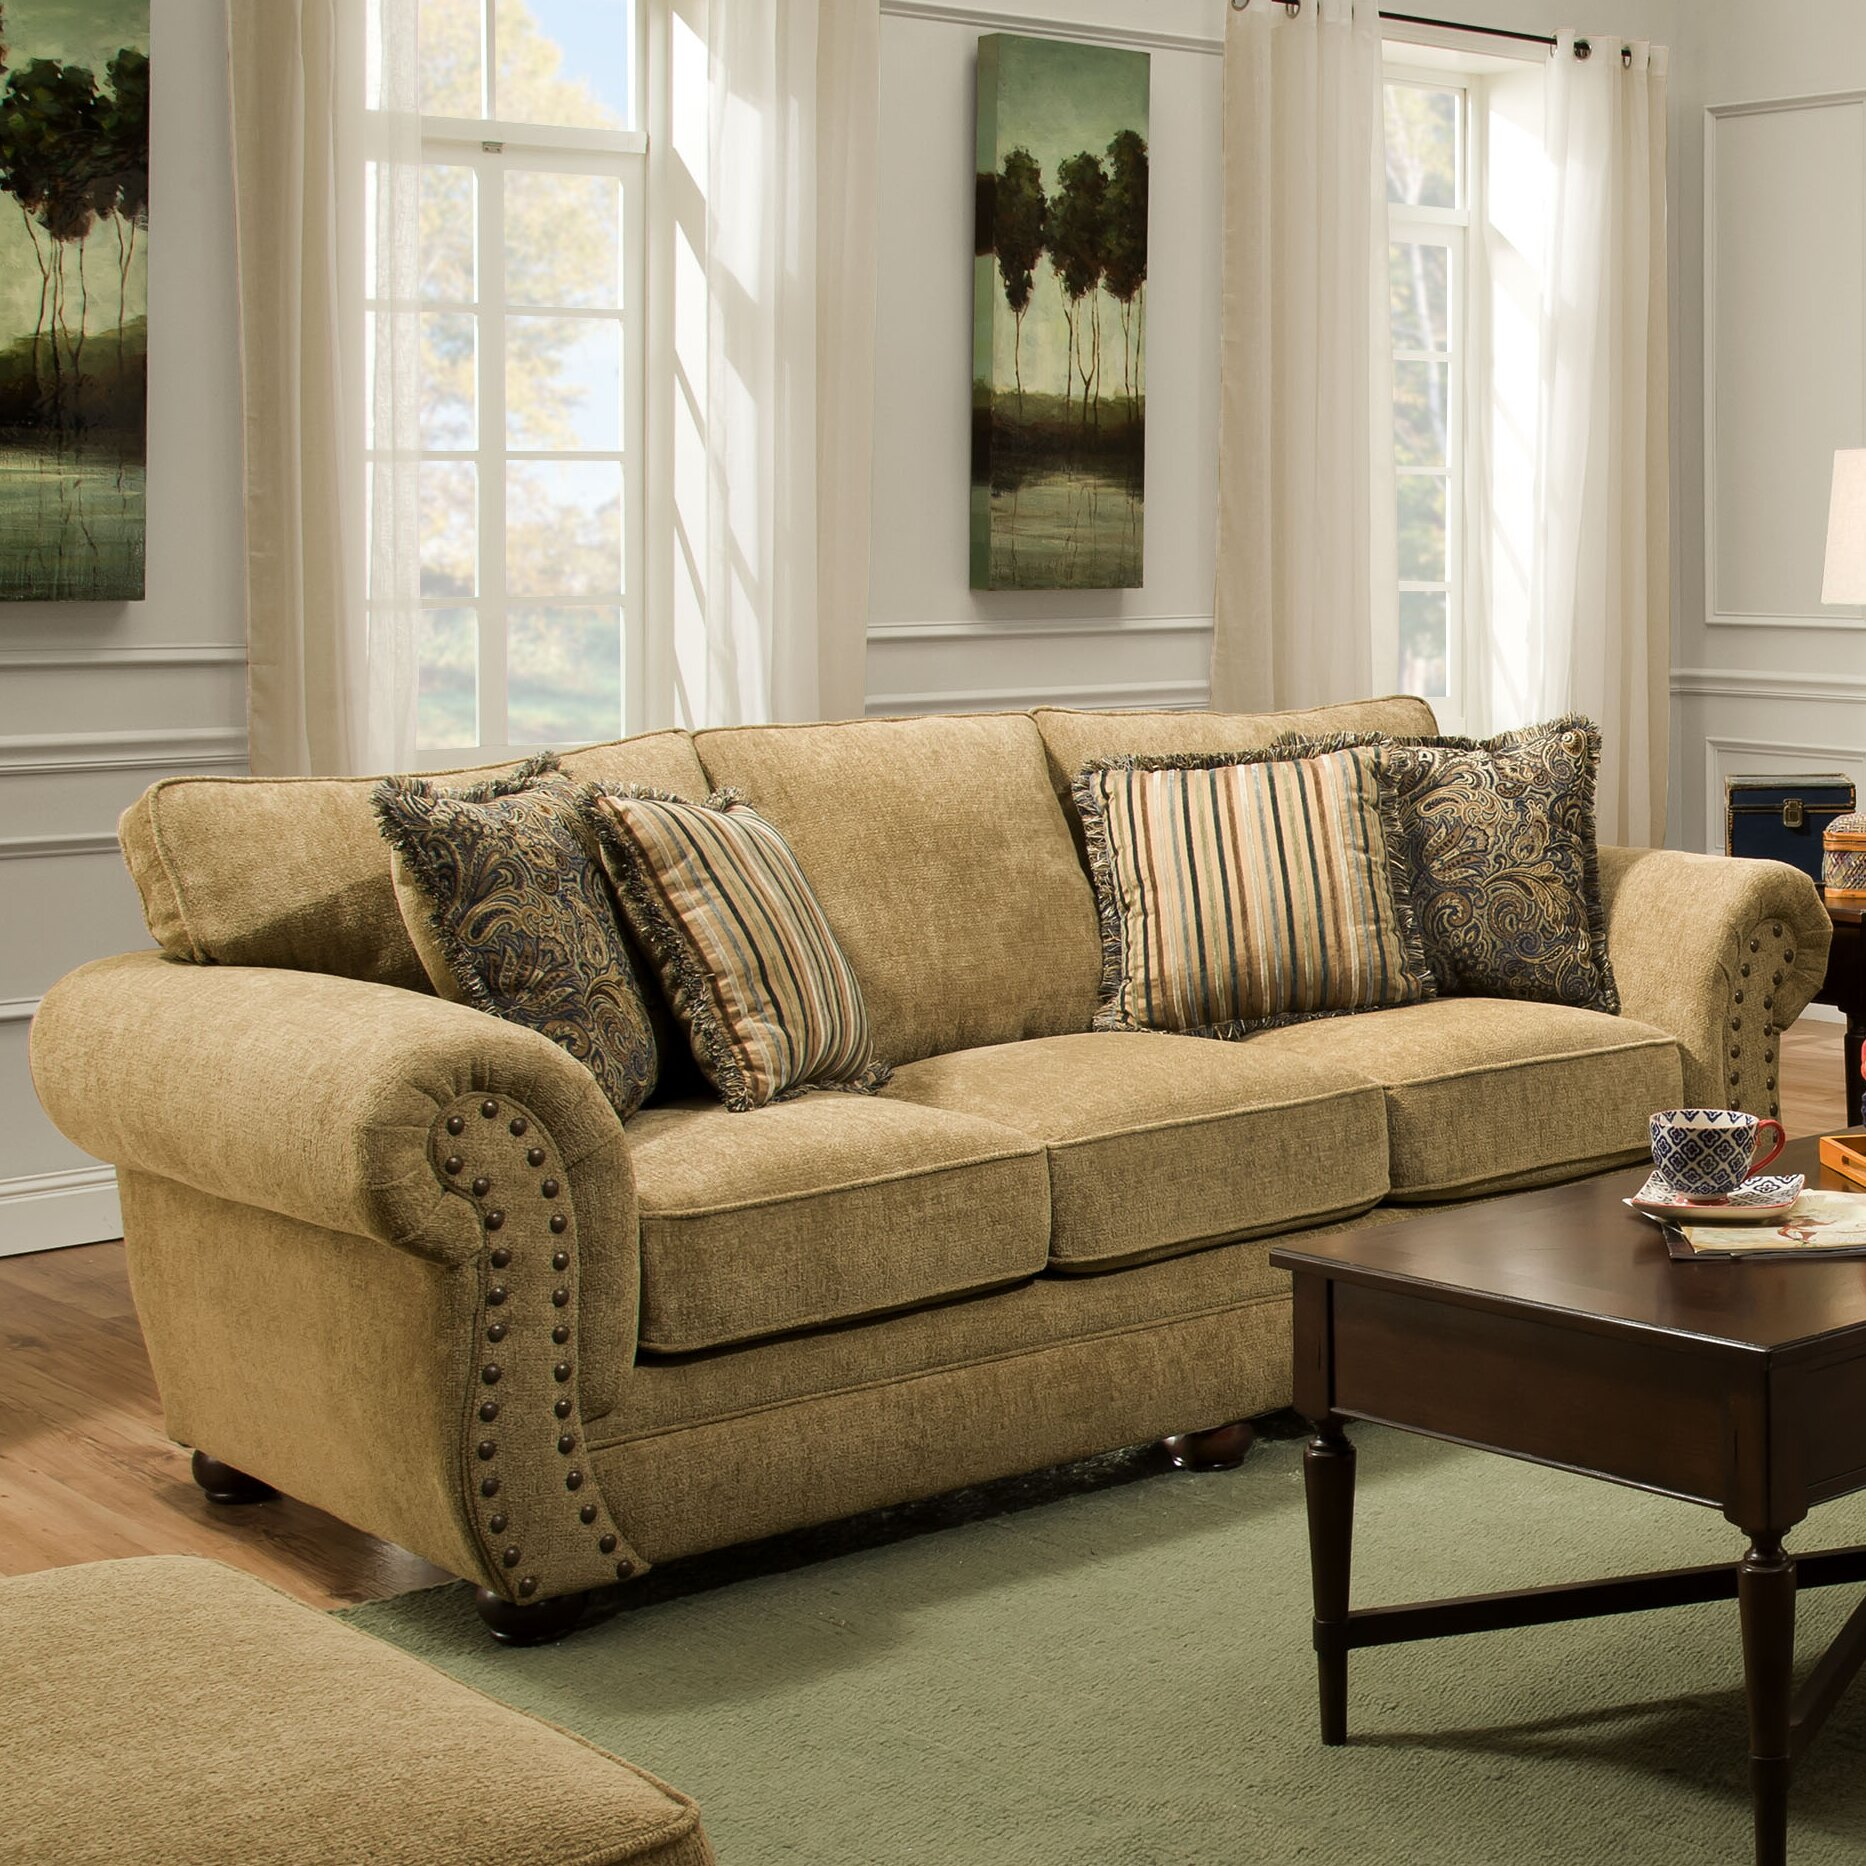 chenille sofas youll love wayfair lakewood tufted sofa hmmi